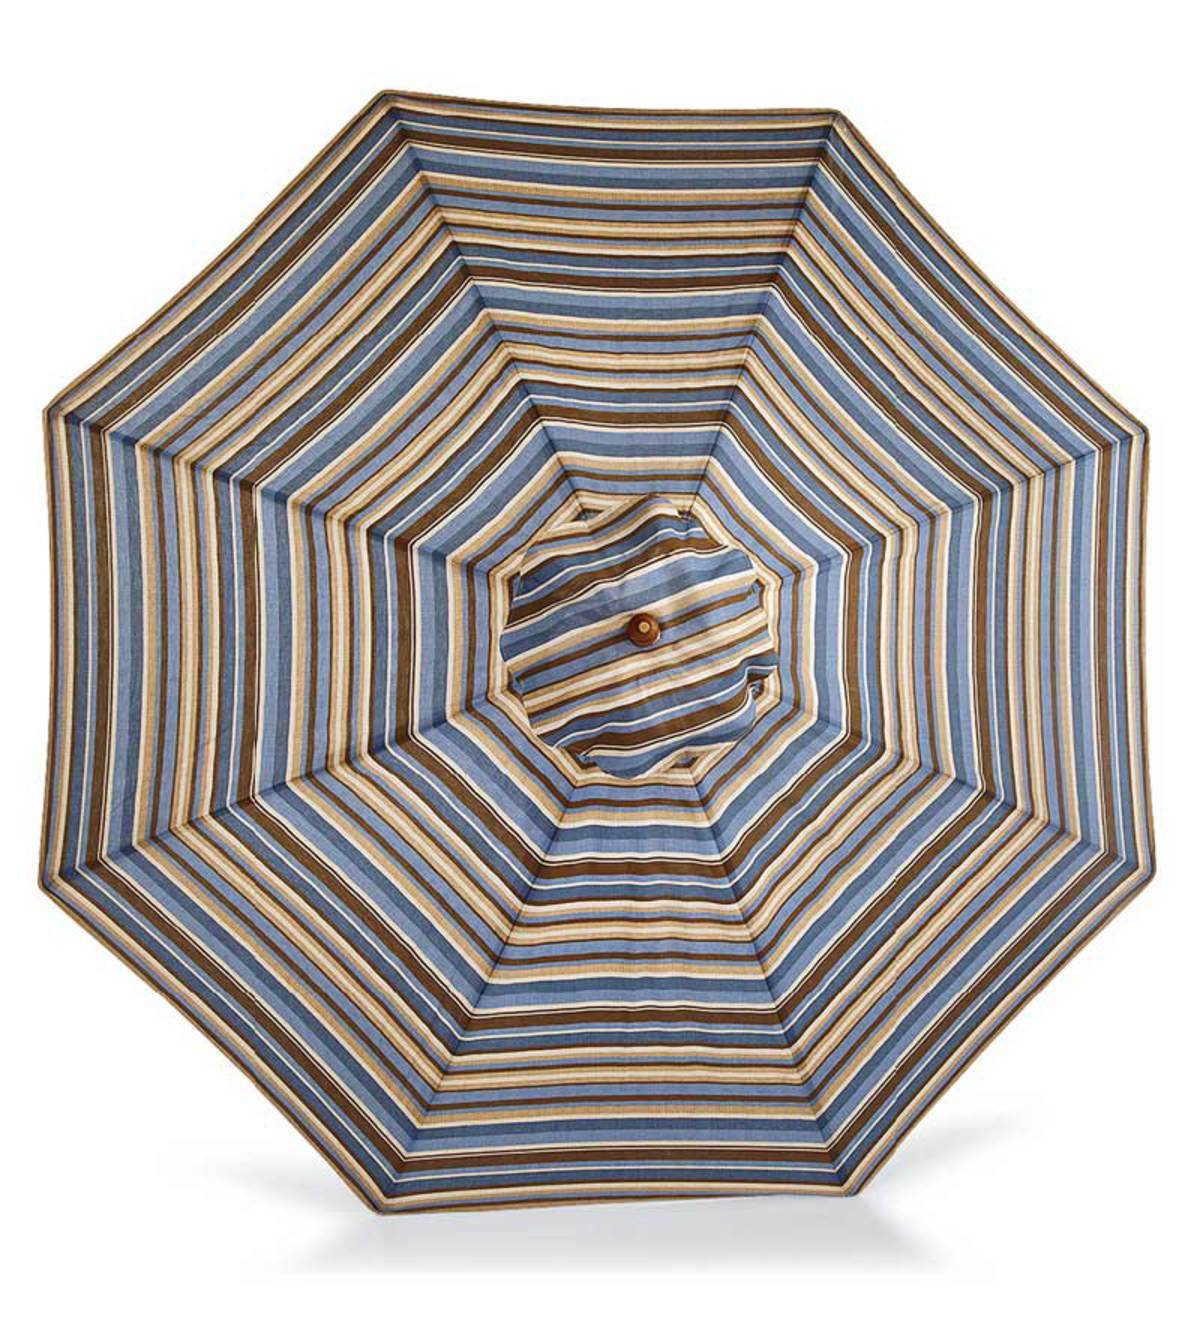 Market Umbrella with Wood Pole and Pulley Lift, 9' dia. - CHOCOLATE STRIPE